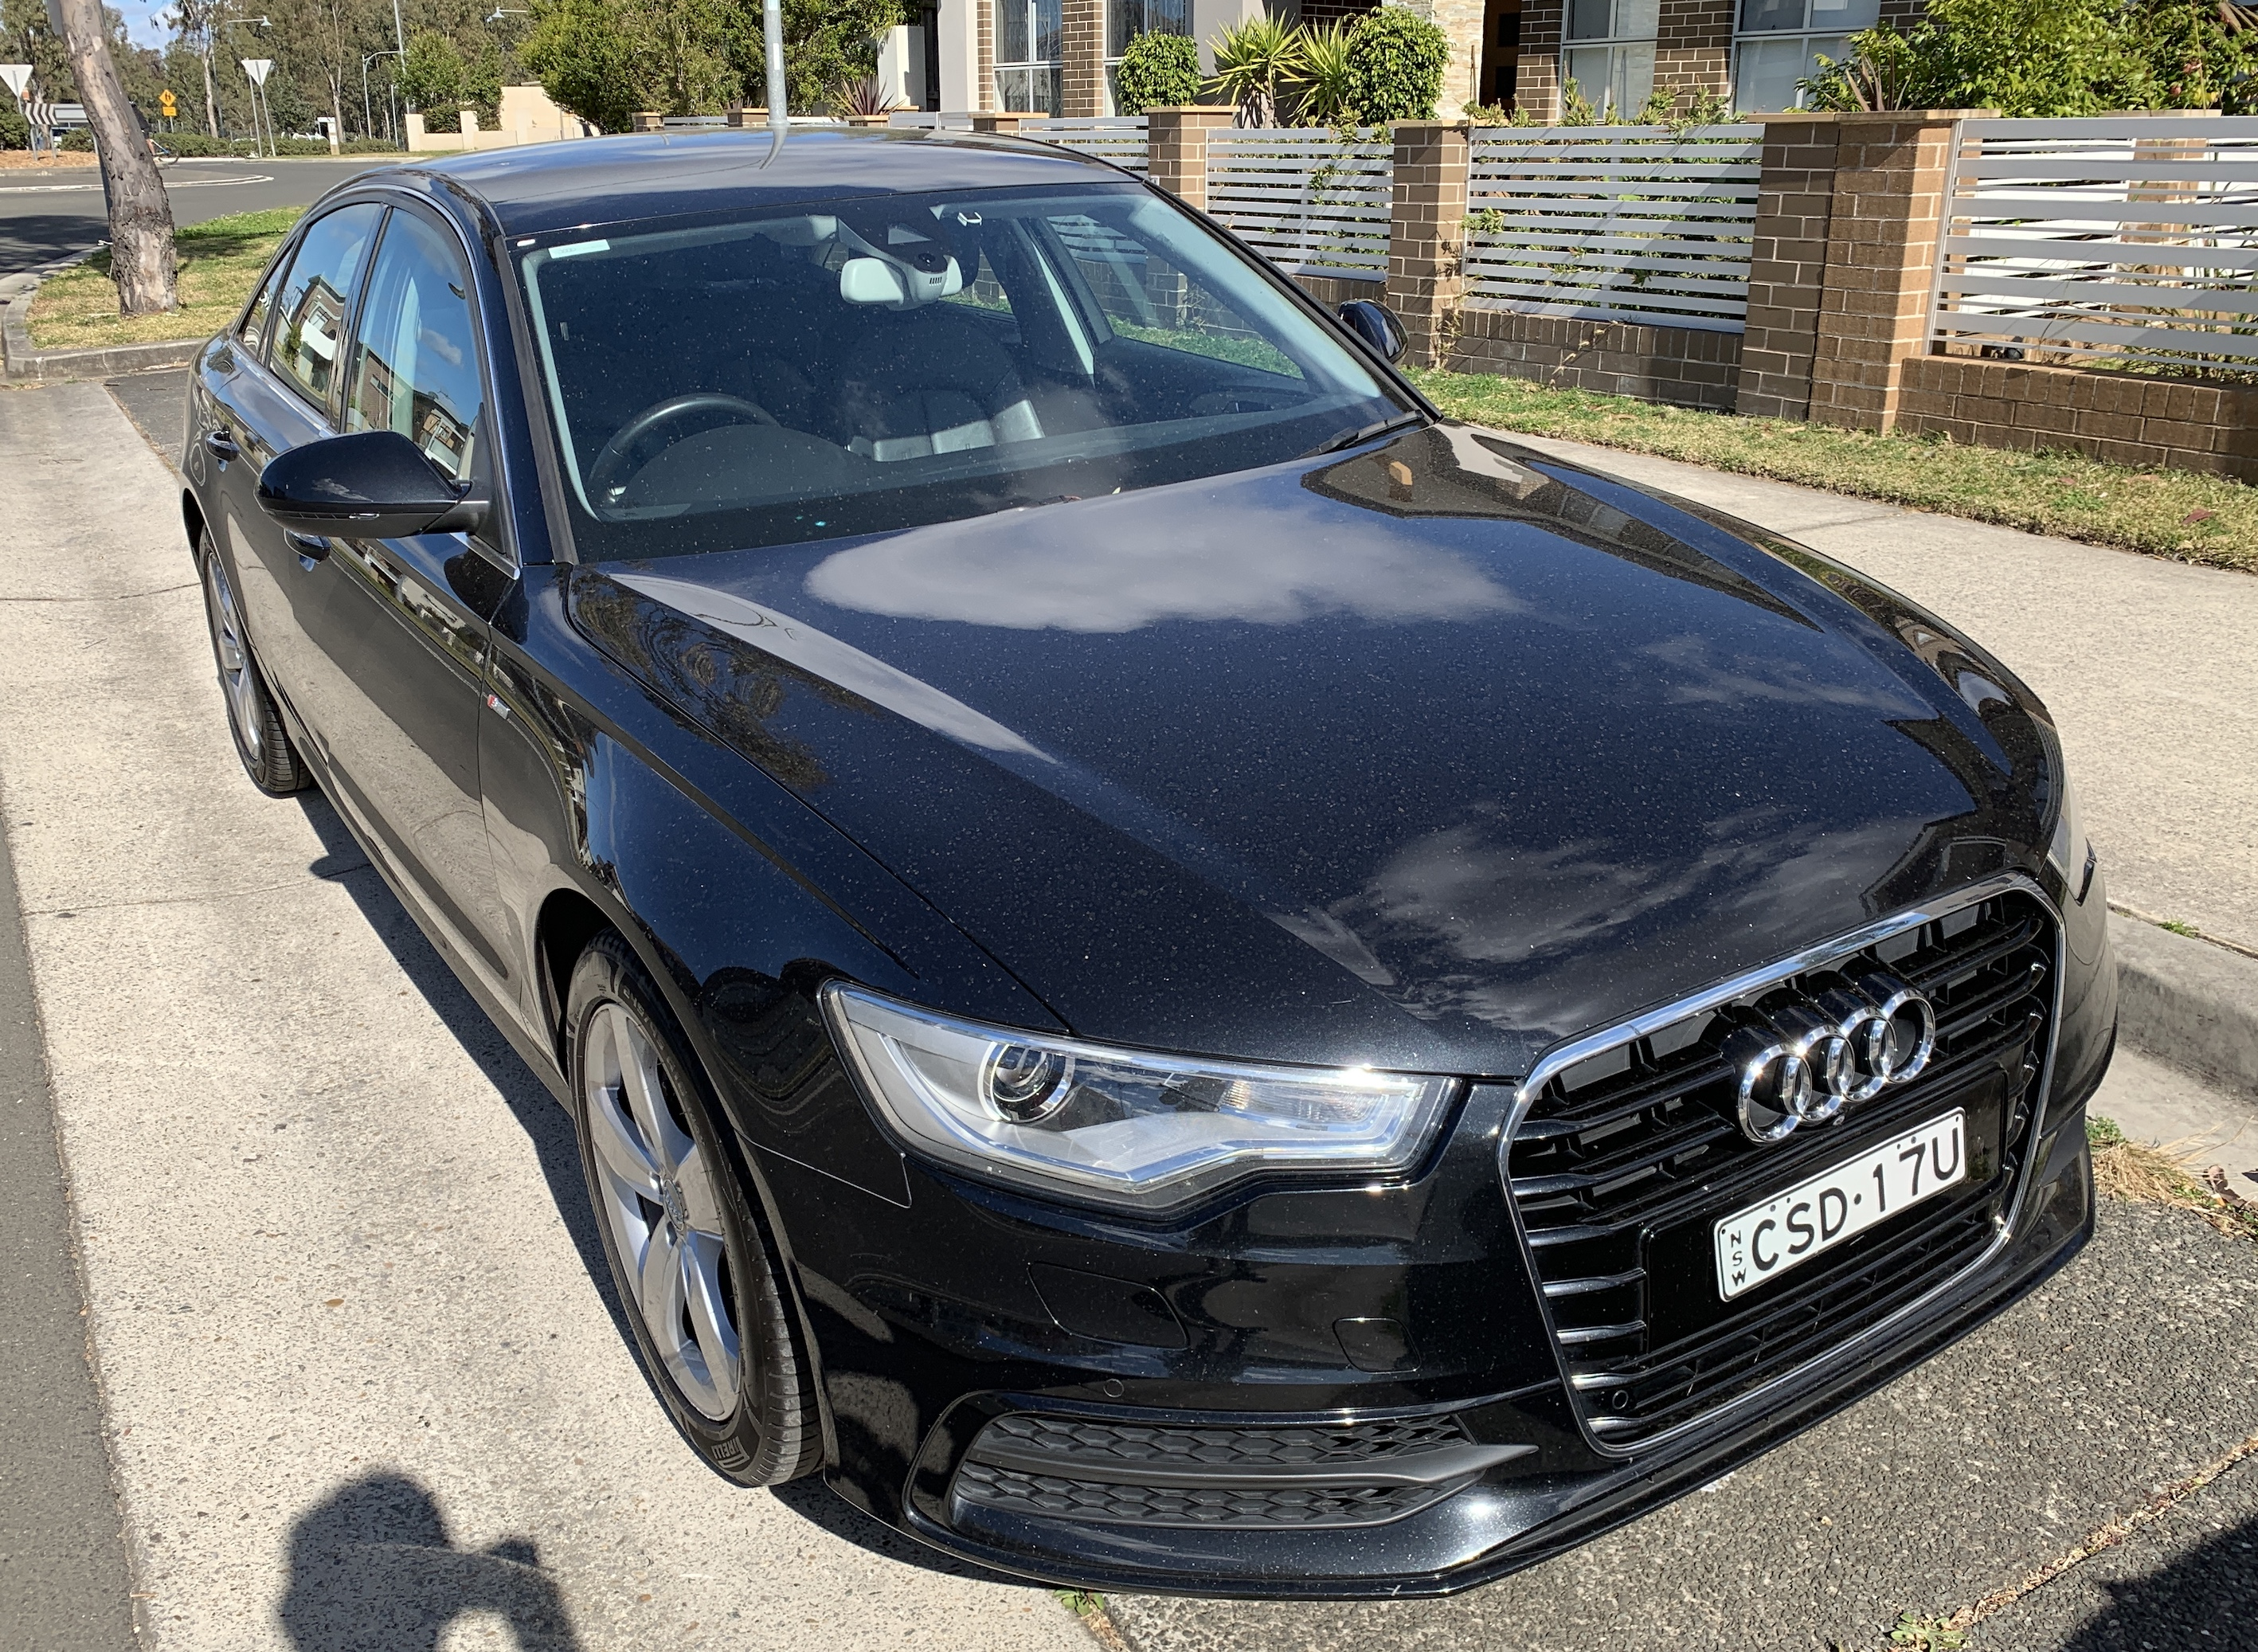 Picture of Thushyanthan's 2014 Audi A6